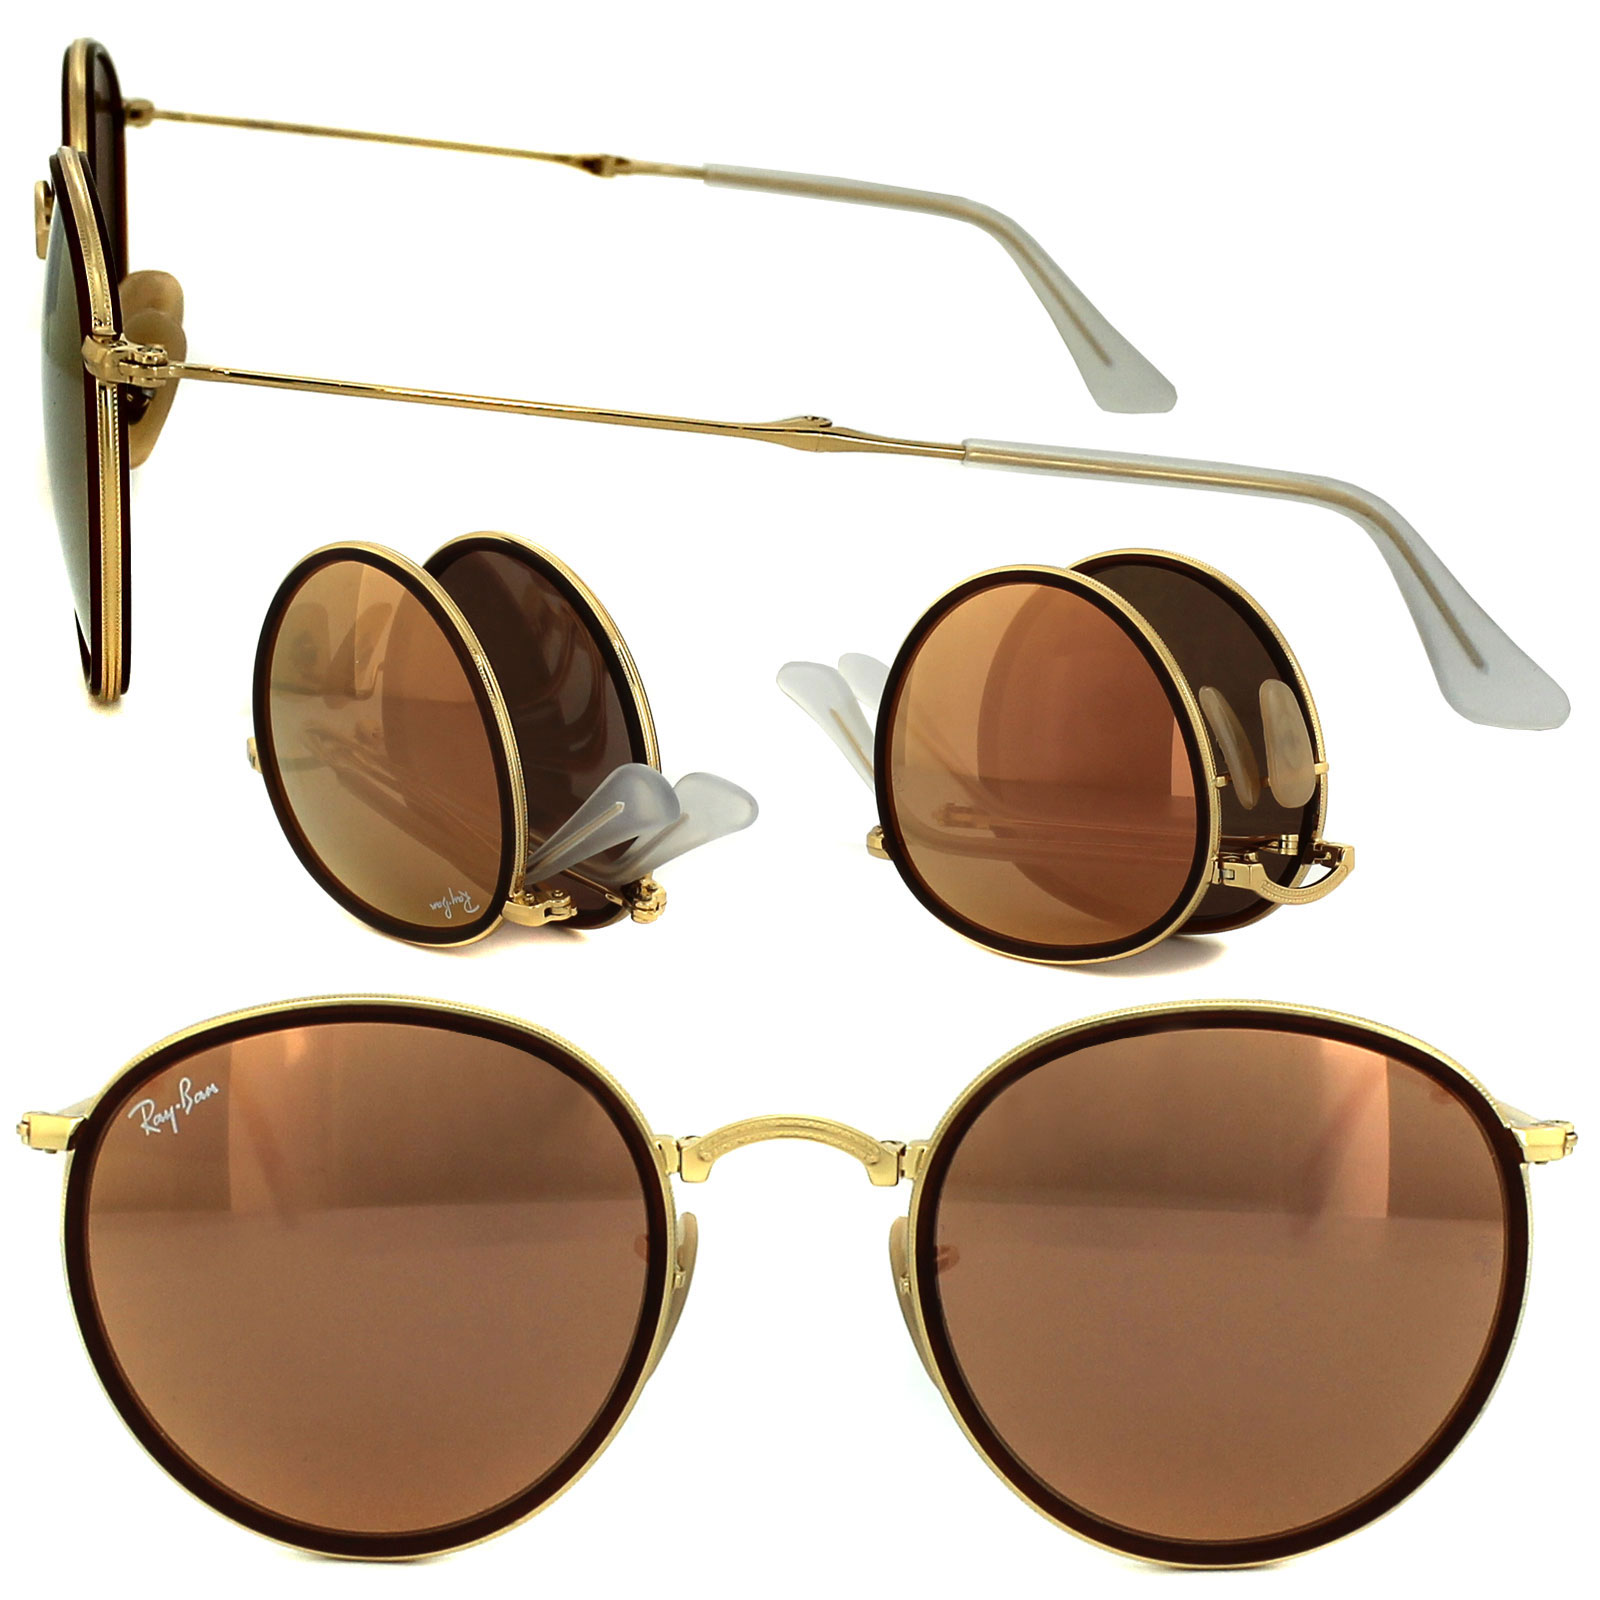 df1bbb10ed783 Sentinel Ray-Ban Sunglasses Round Folding 3517 001 Z2 Gold Copper Mirror